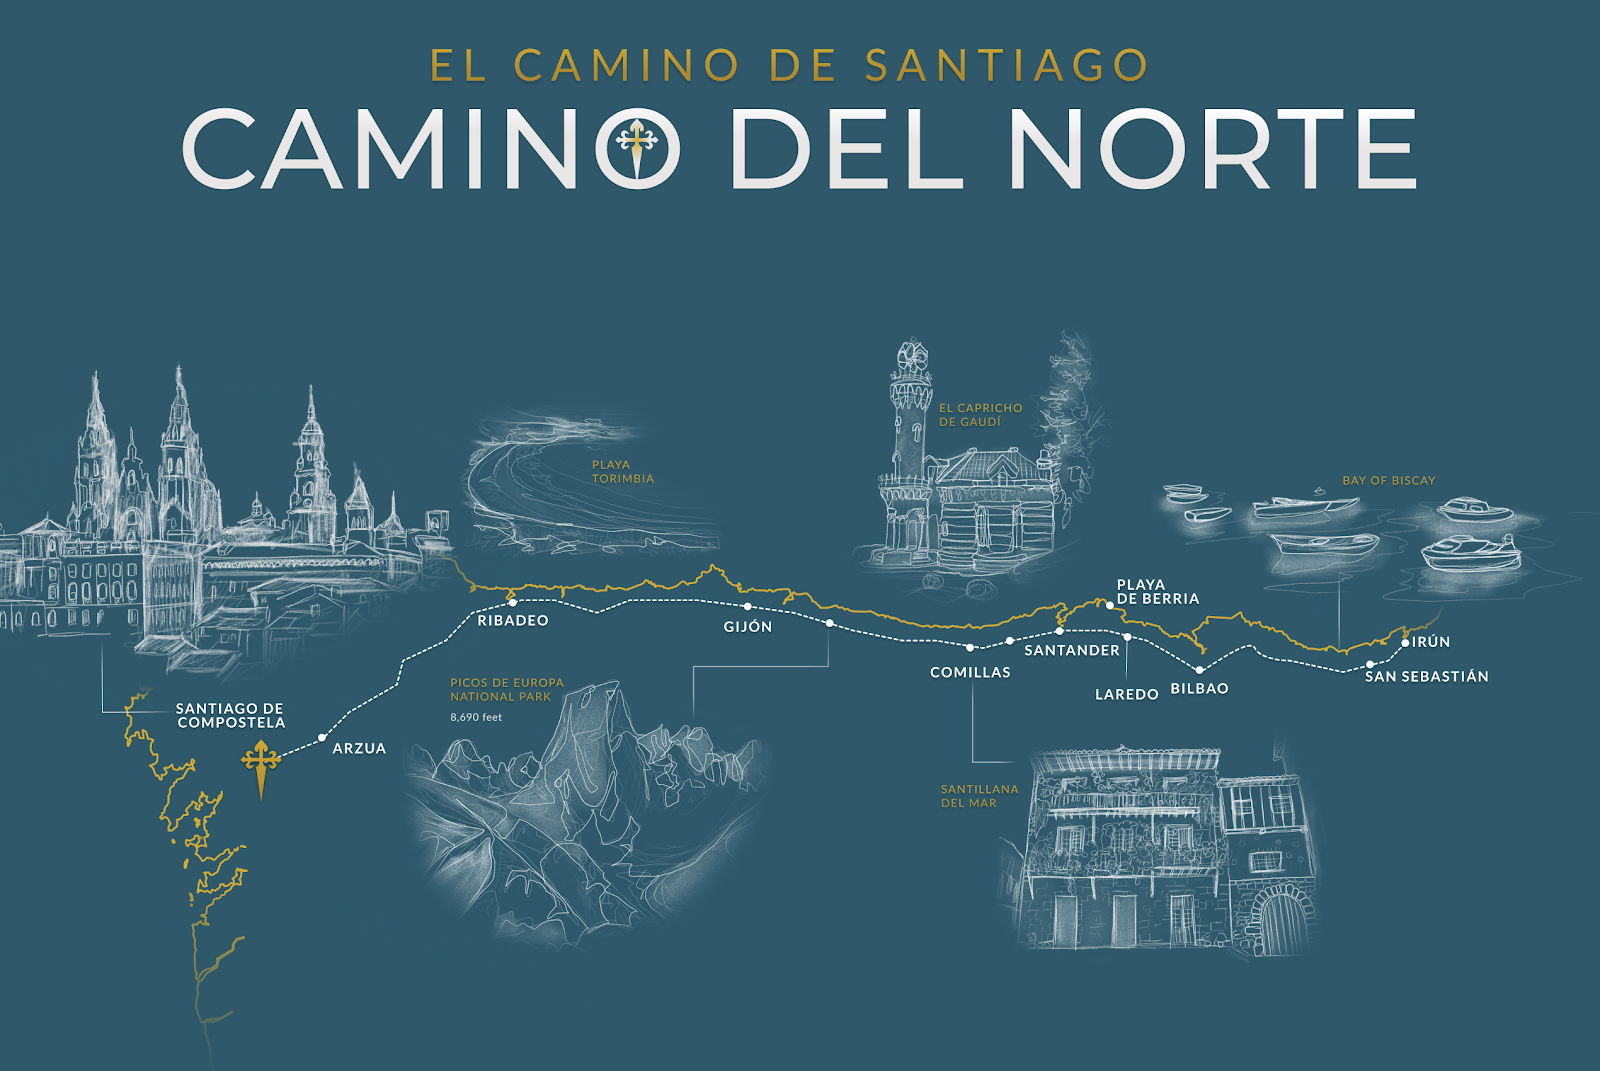 Camino del Norte route map